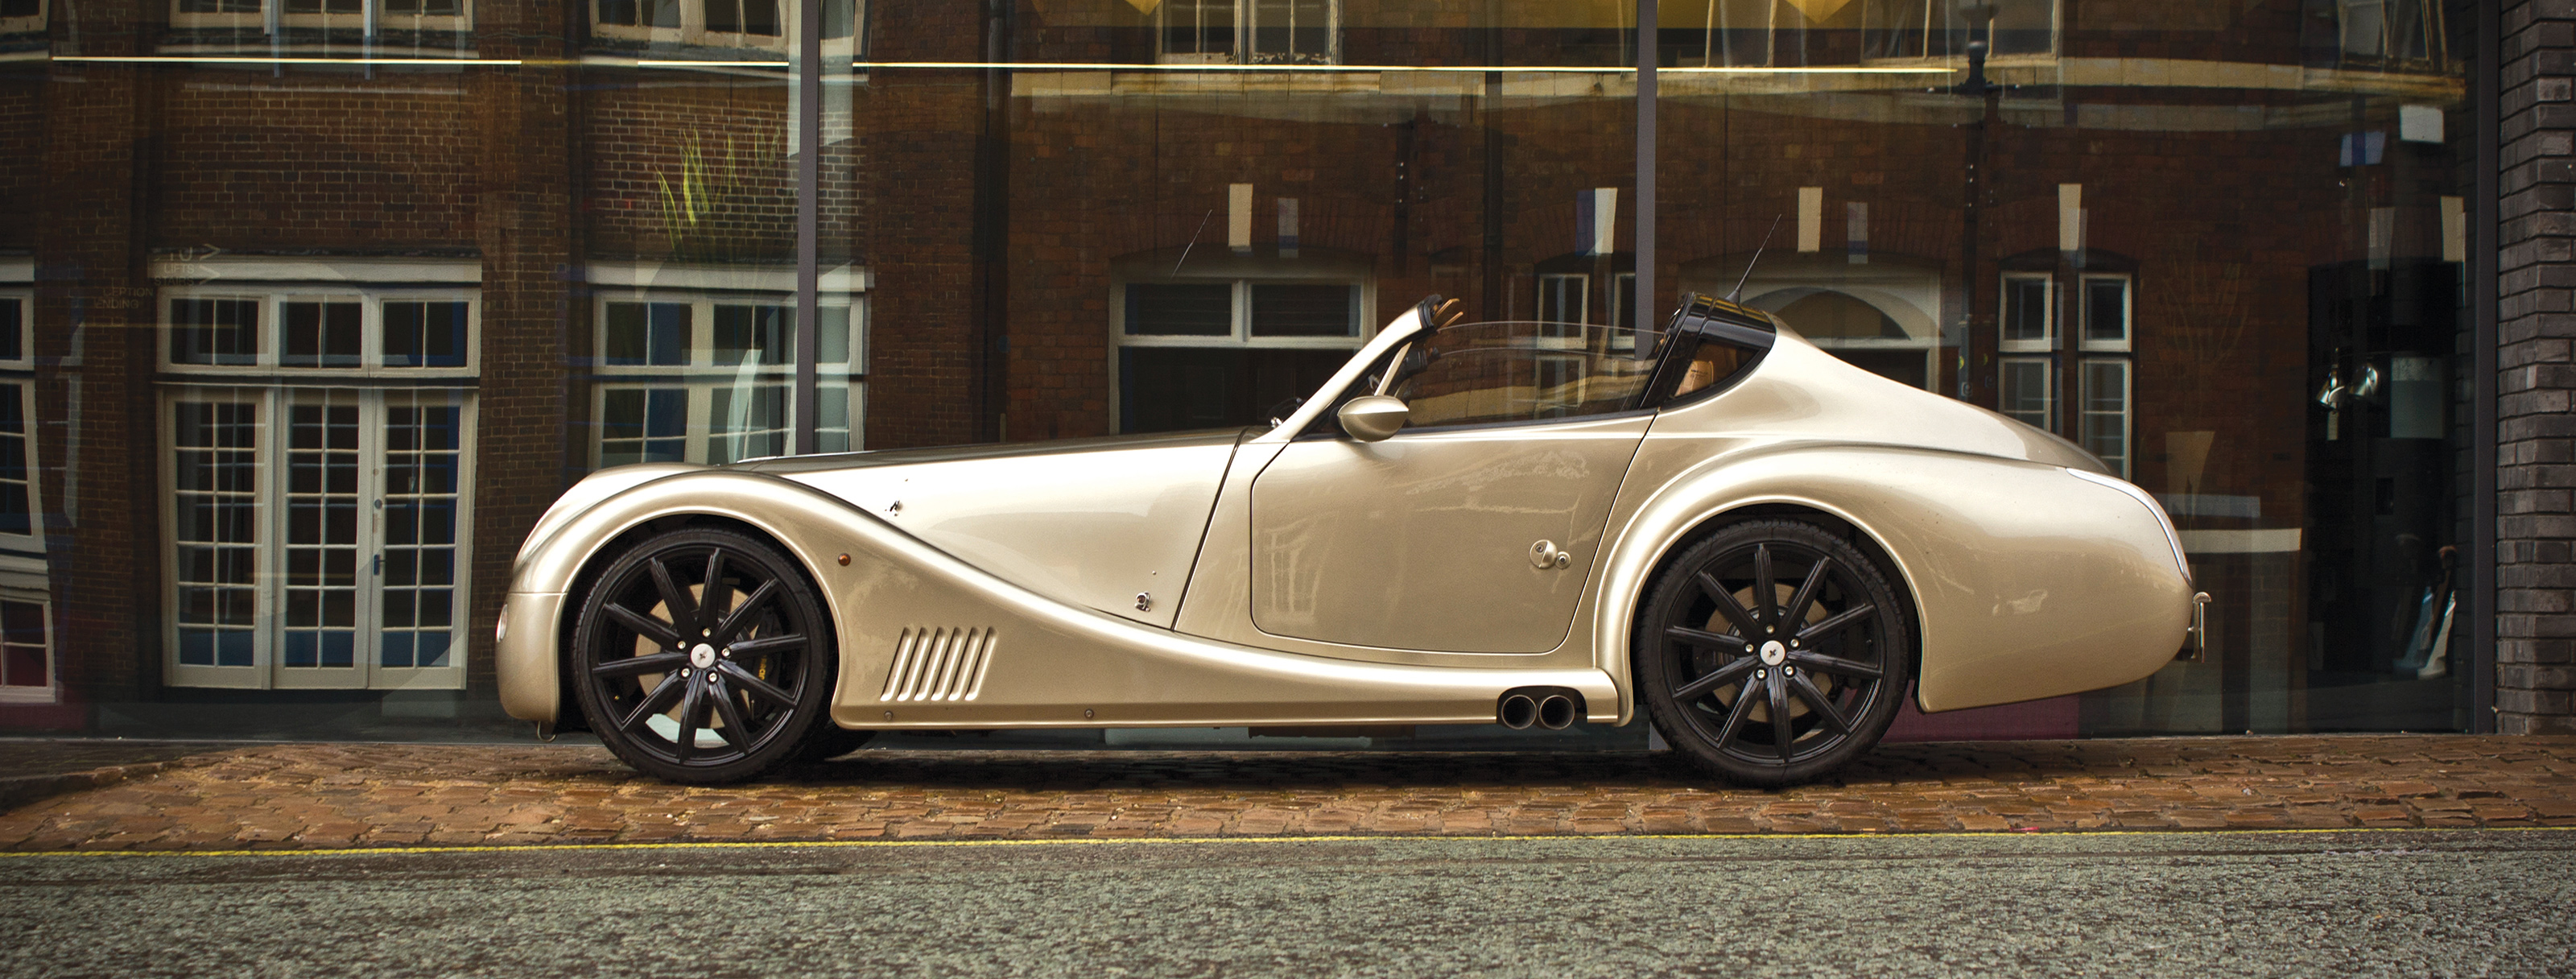 Morgan Kingdom Magazine The waiting list once famously blew out to nine it's a morgan, after all. kingdom magazine